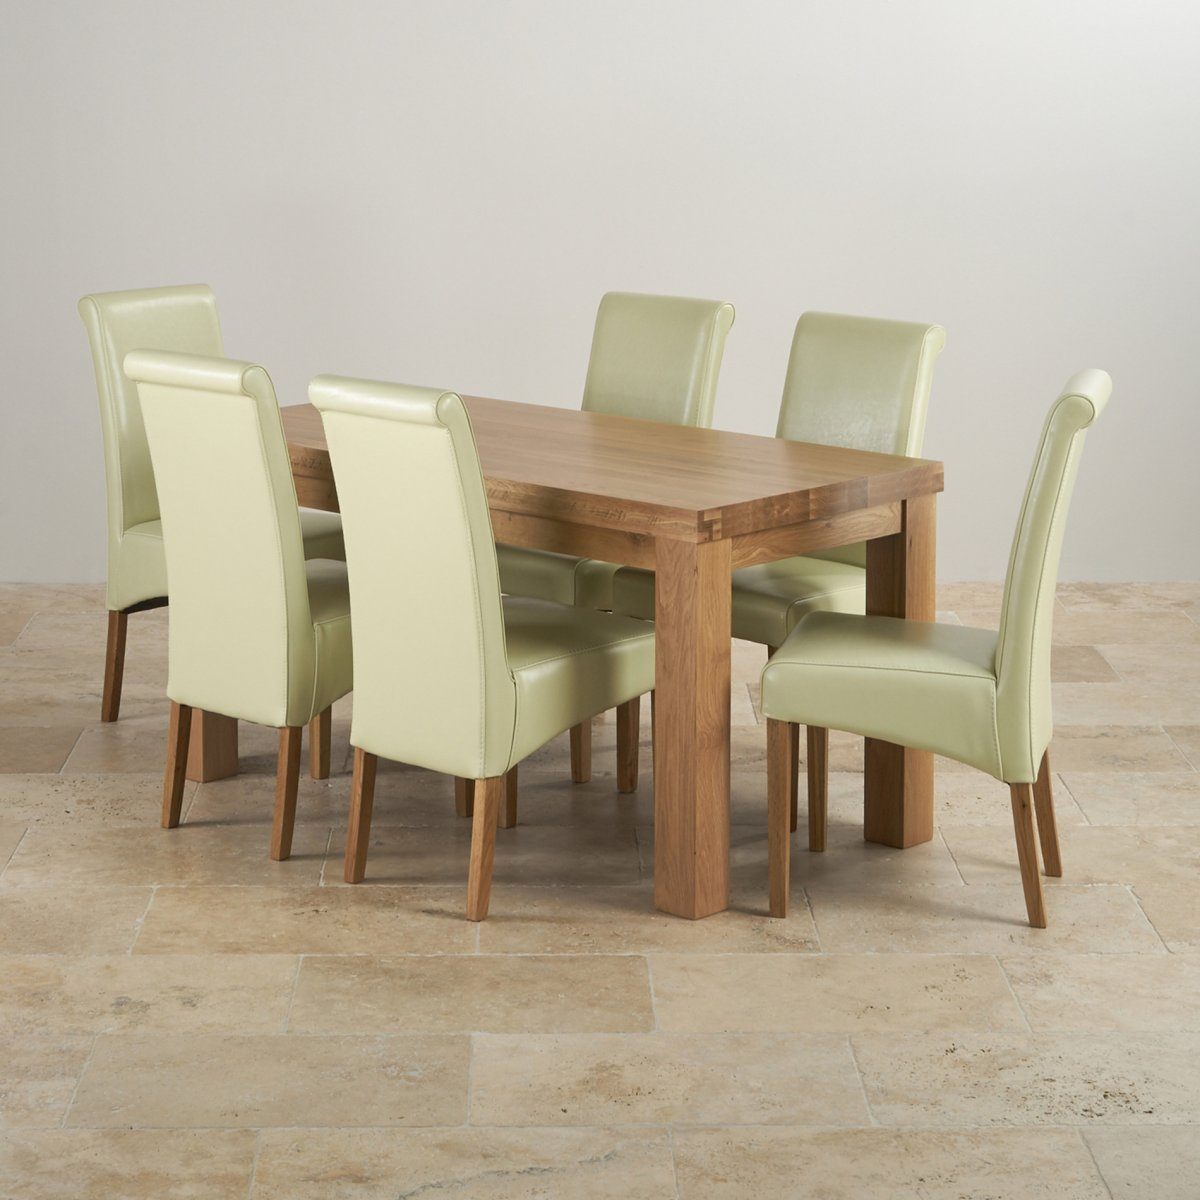 Chunky Dining Set In Oak: Dining Table + 6 Cream Leather